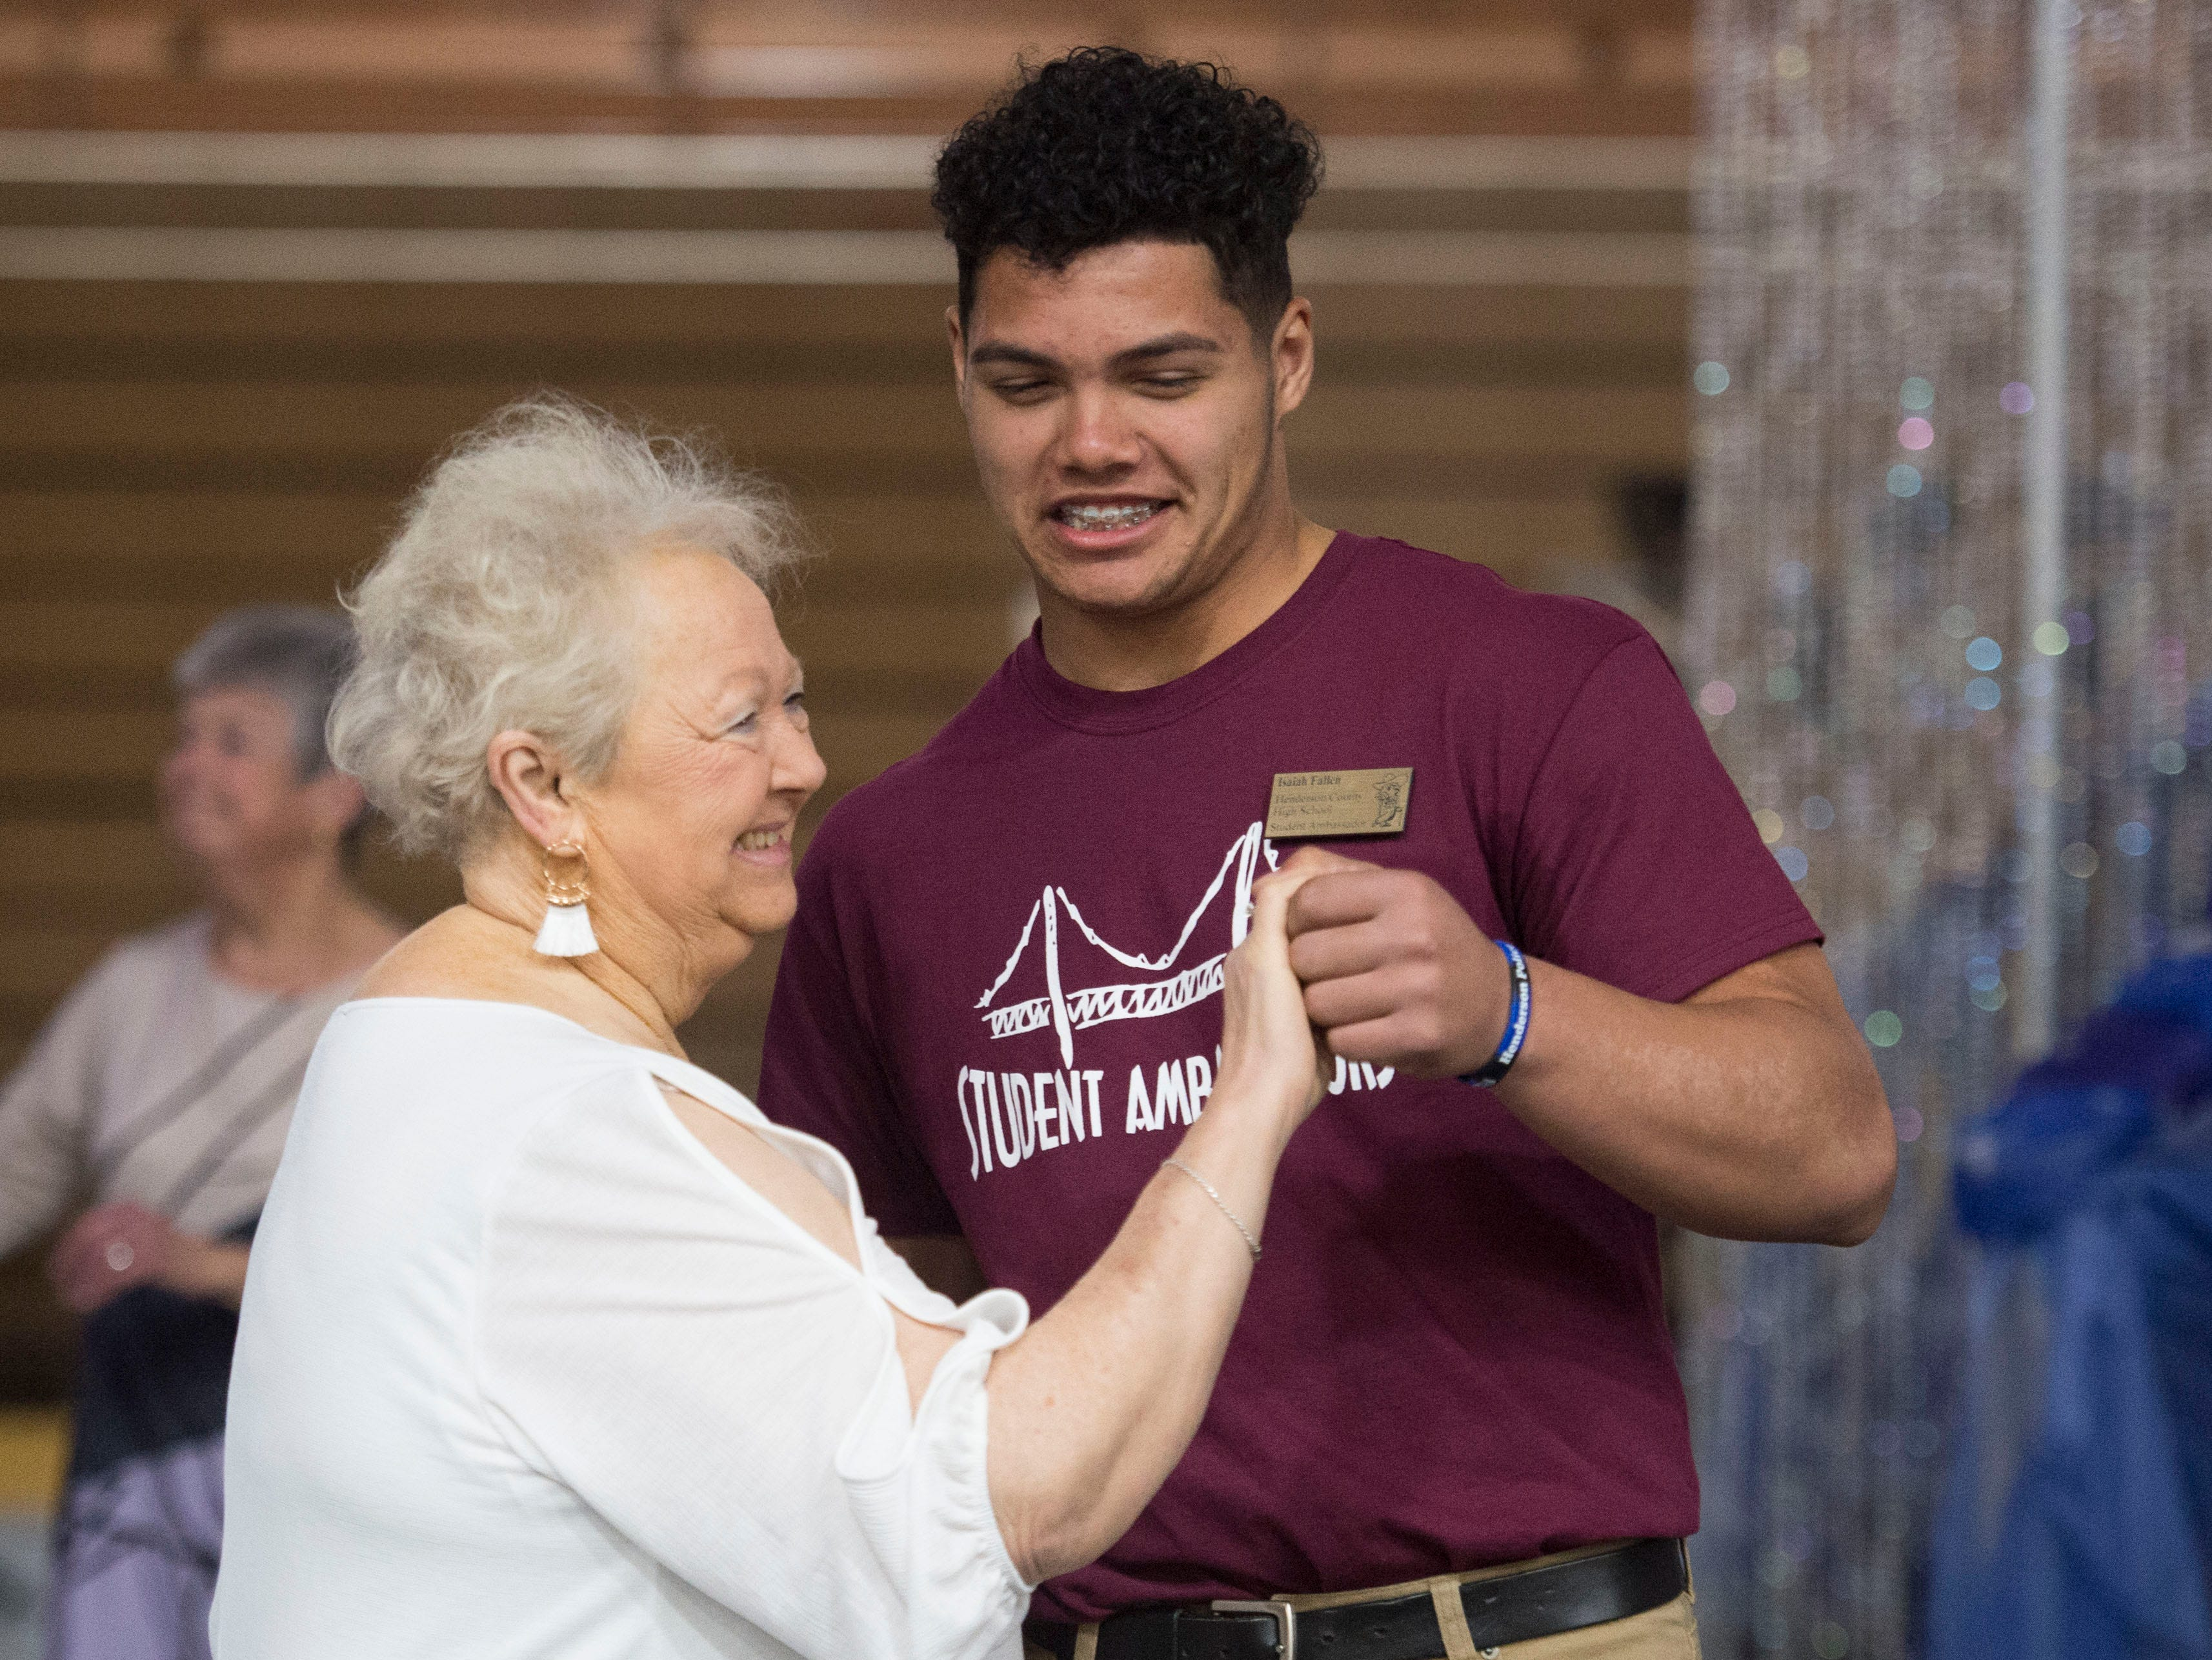 Henderson County High School student Isaiah Fallen, left, dances with Judy Graham, right, during the 2019 Senior Citizen Prom Monday, April 15, 2019.